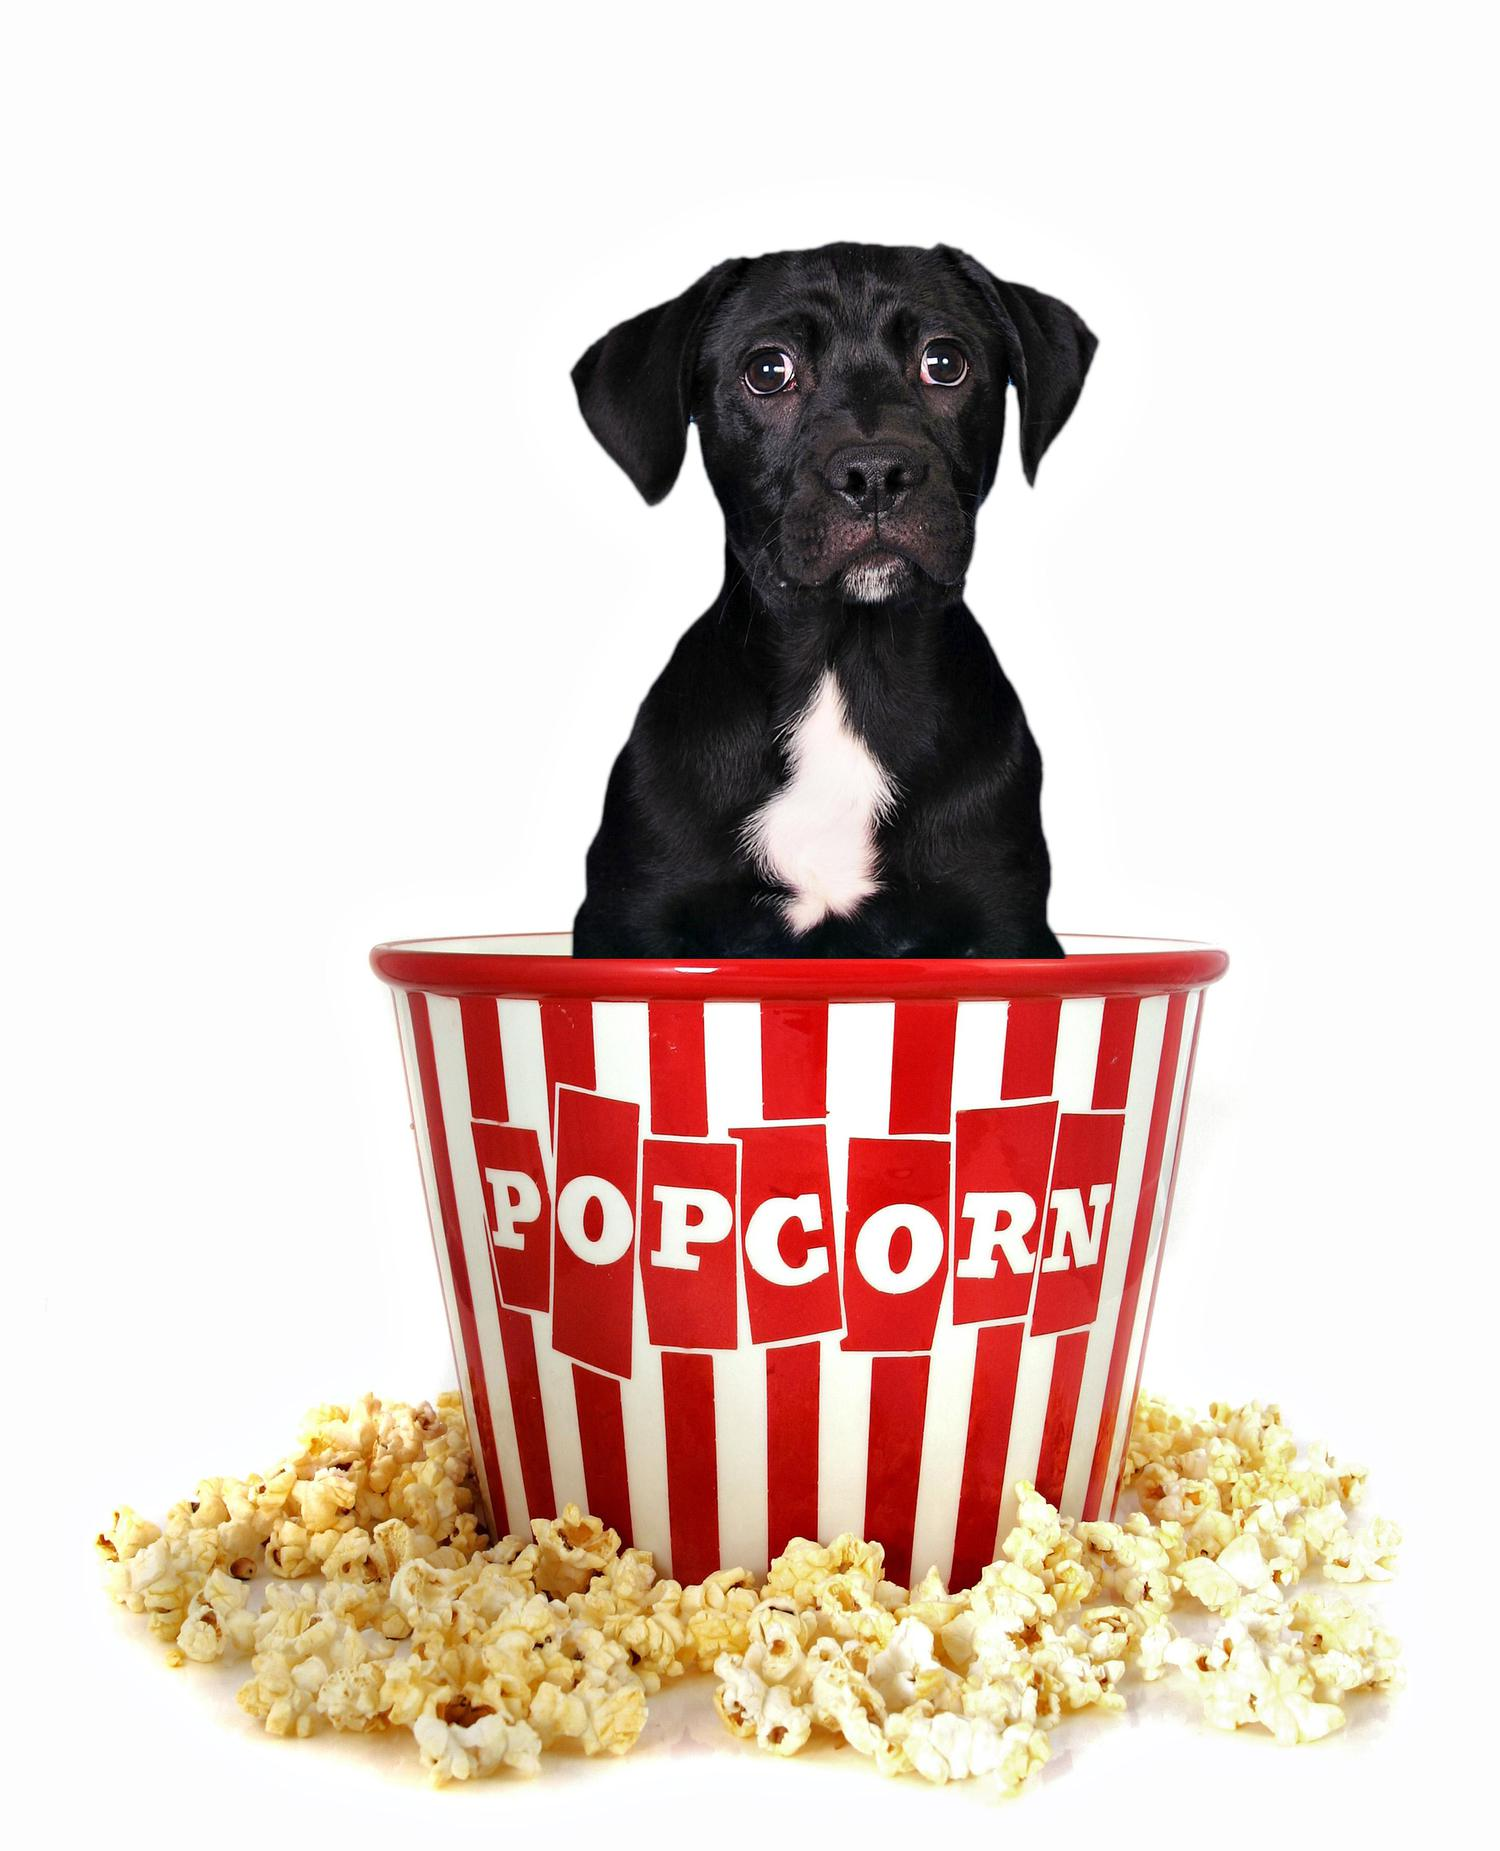 Is Popcorn Good For Dogs To Eat